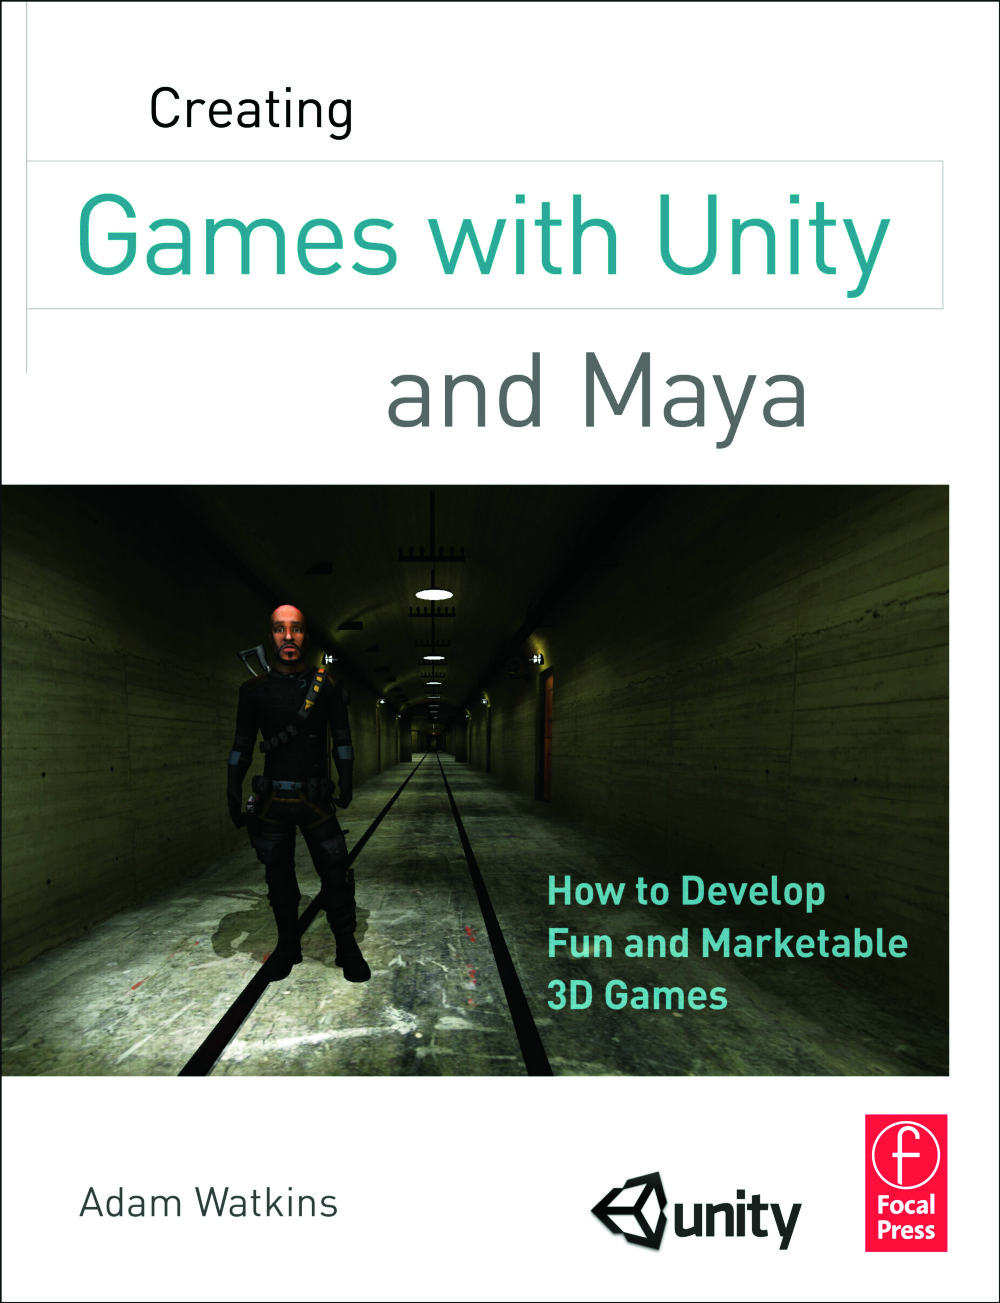 Creating Games with Unity and Maya: How to Develop Fun and Marketable 3D Games book cover